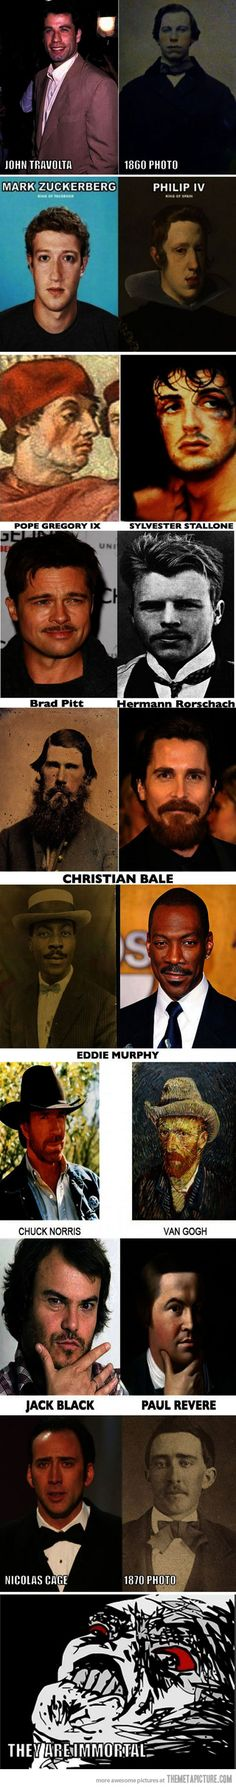 Immortal celebrities, holy cow lol